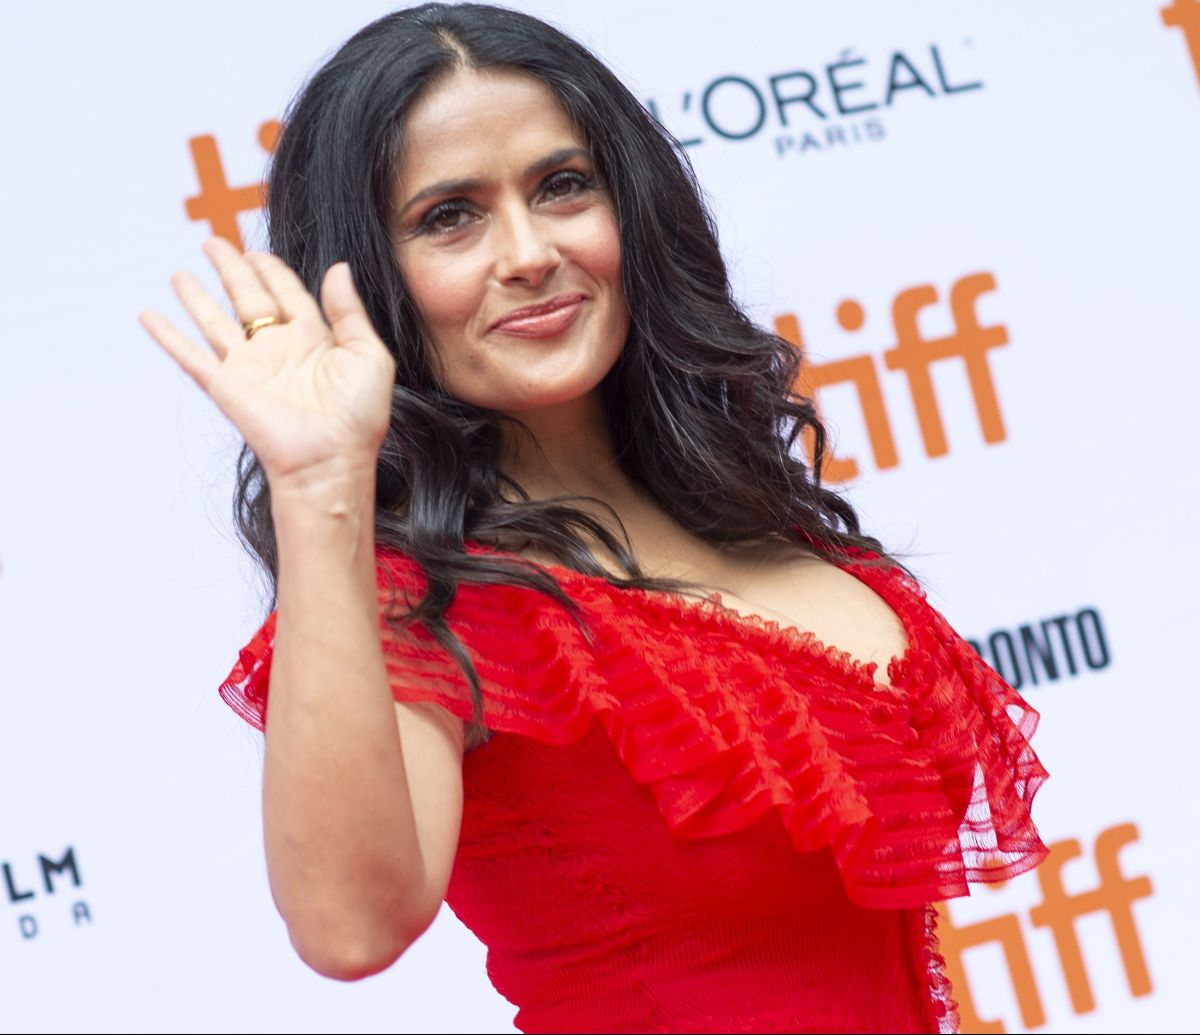 """Salma Hayek is """"Emperifolla"""" and devours a taco wearing a tremendous cleavage 